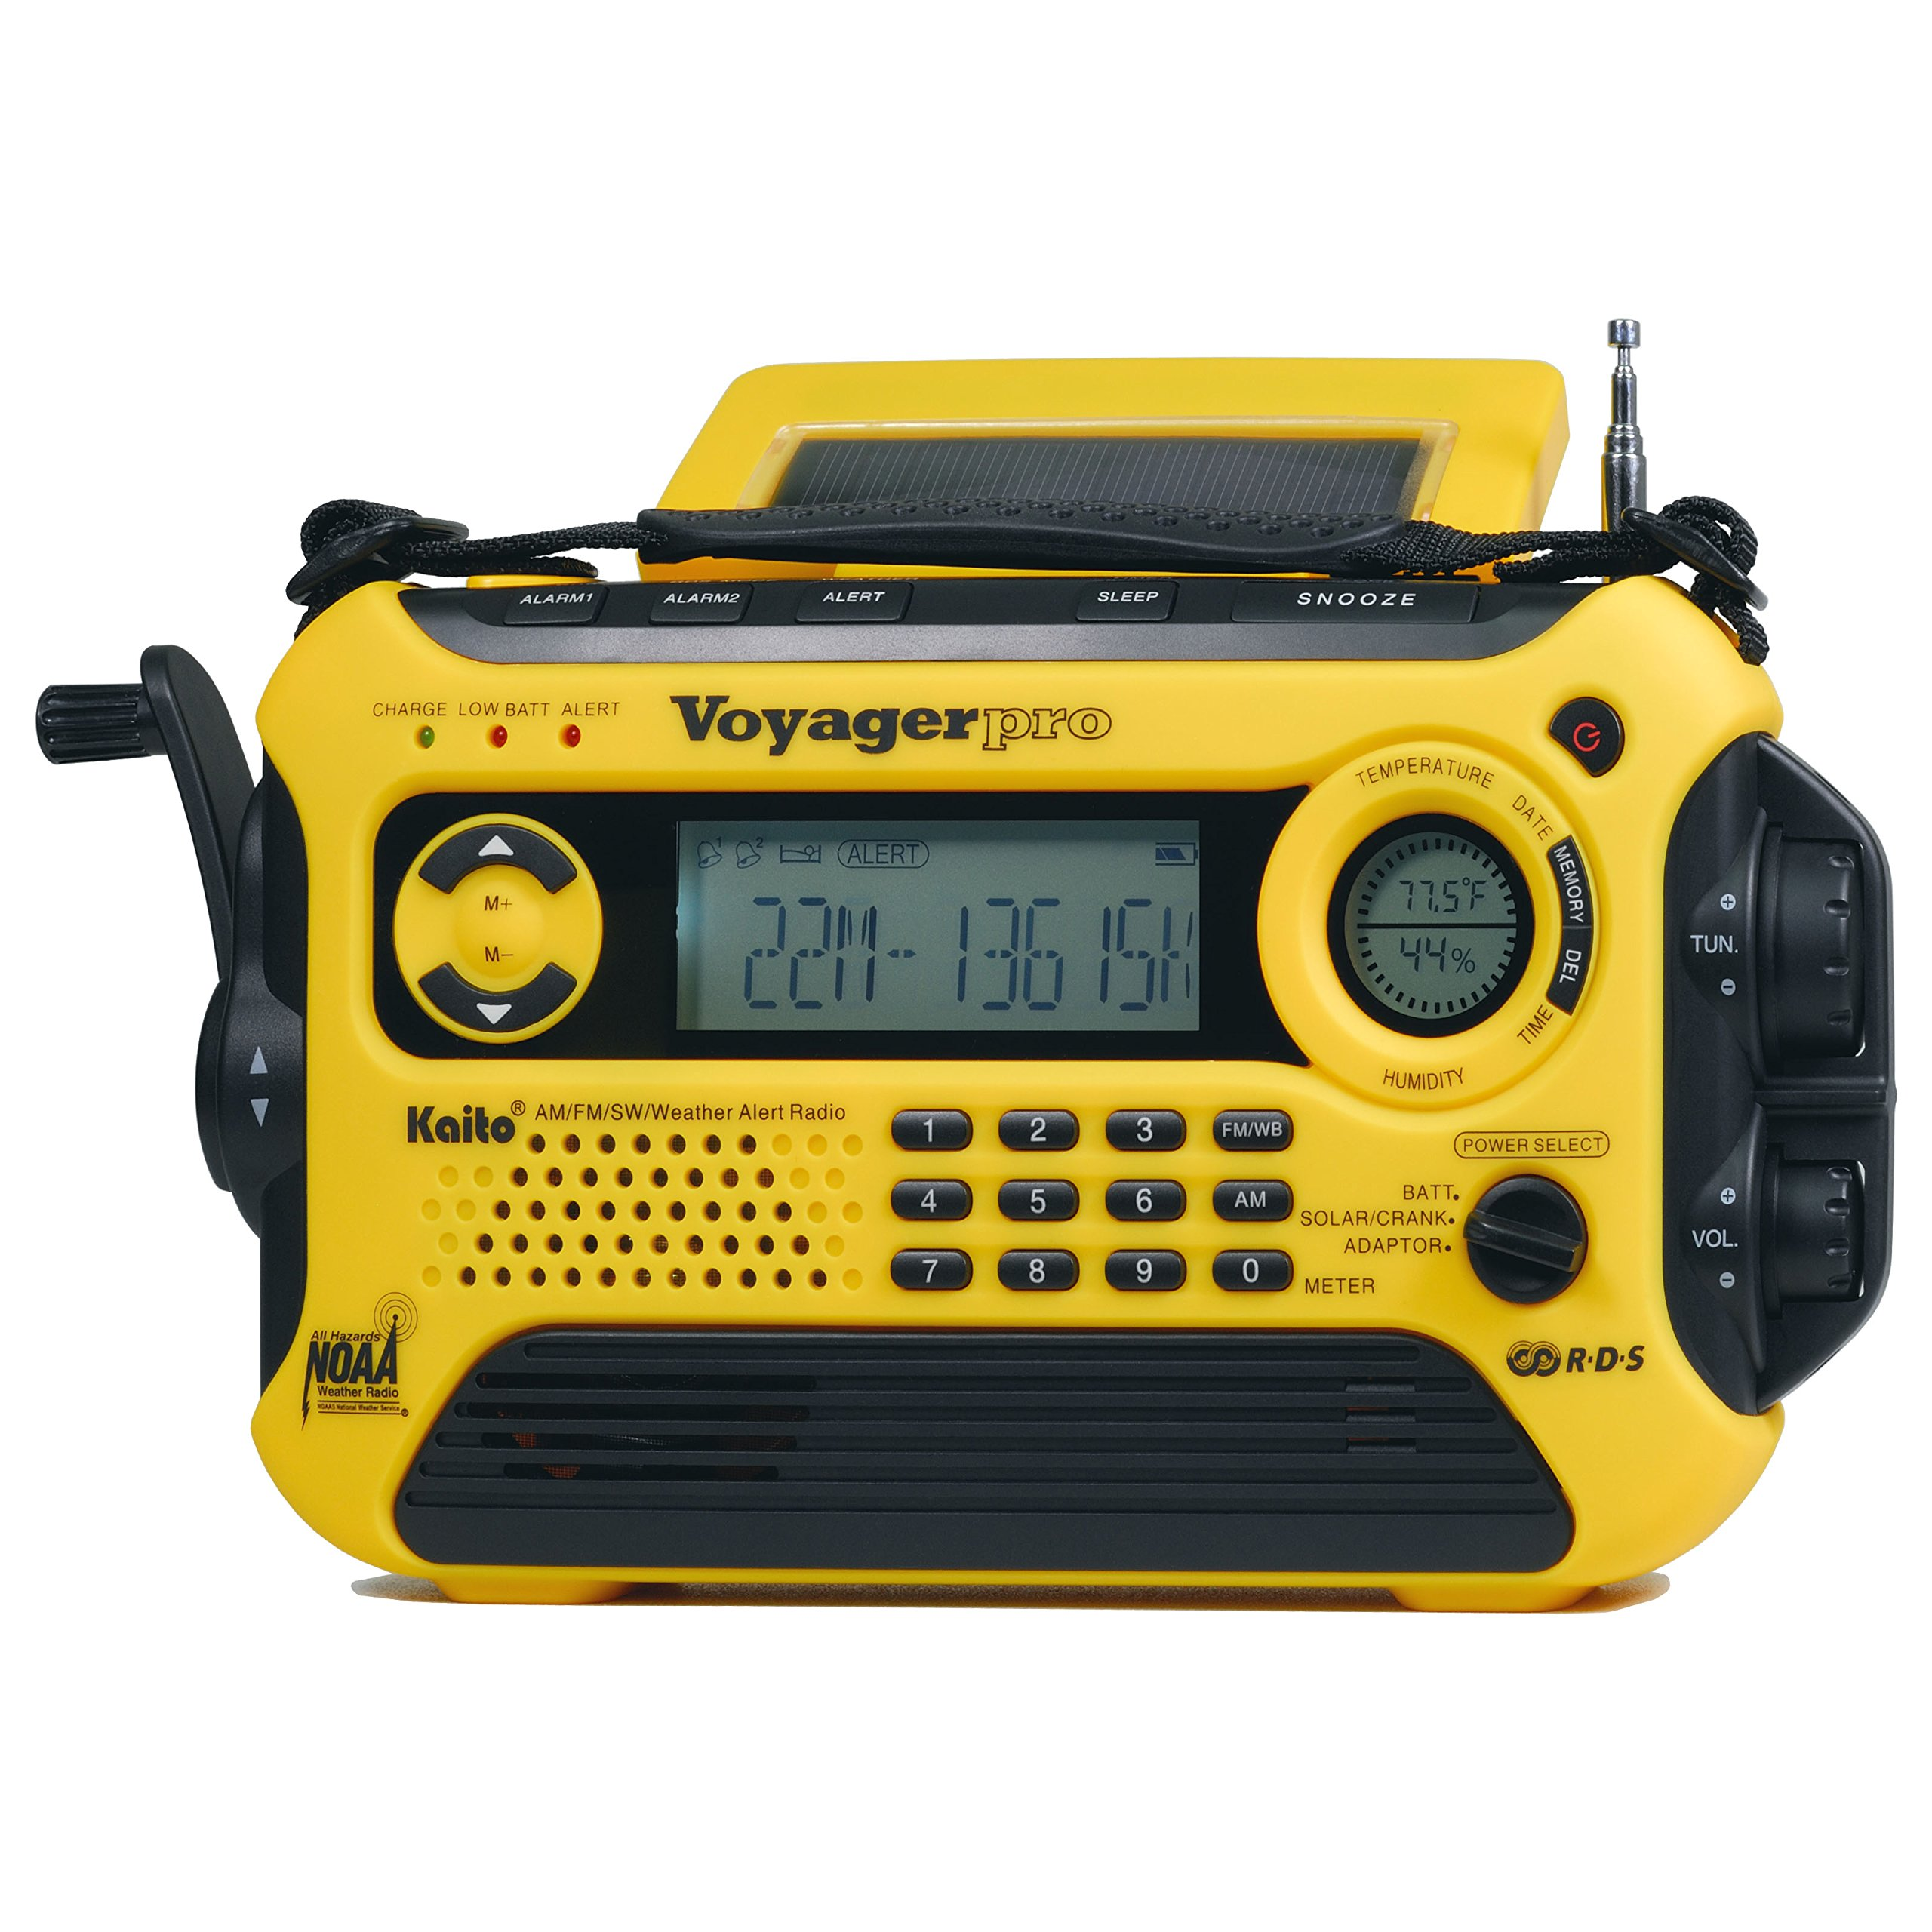 Kaito Voyager Pro KA600 Digital Solar Dynamo Crank Wind Up AM/FM/LW/SW & NOAA Weather Emergency Radio with Alert, RDS & Smart Phone Charger, Yellow (AC Wall Adapter Included) by Kaito (Image #3)